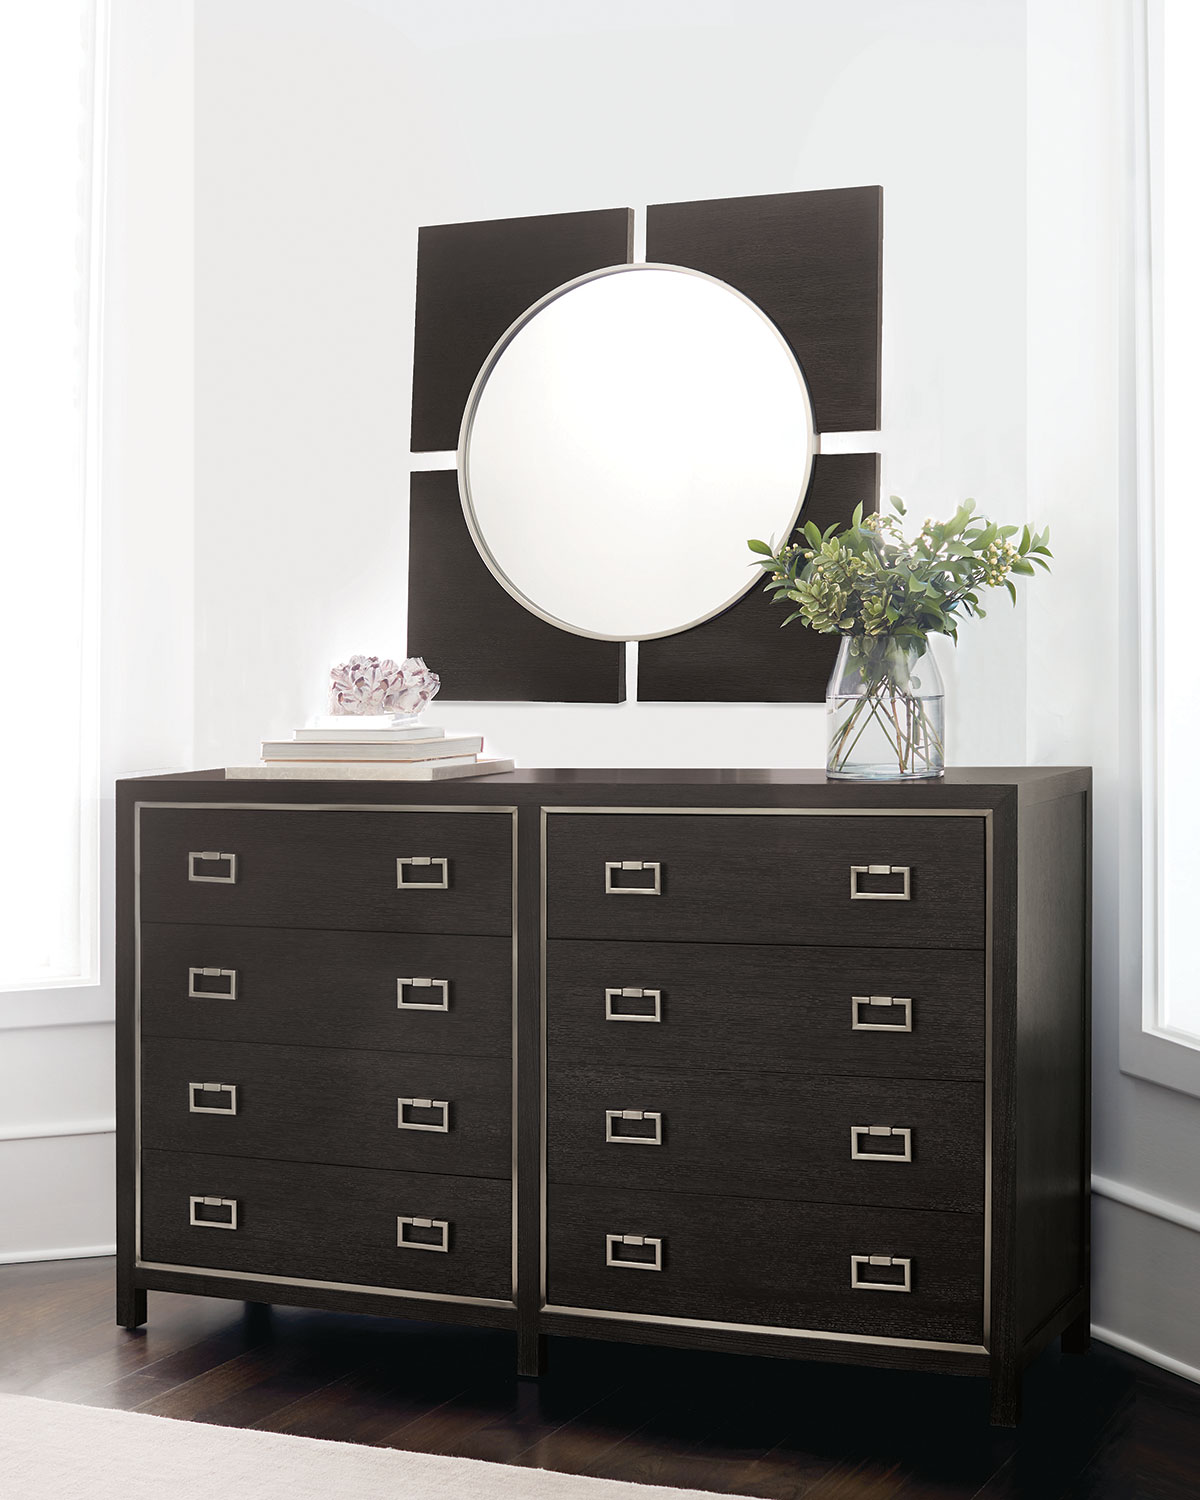 Decorage Tall 8 Drawer Dresser